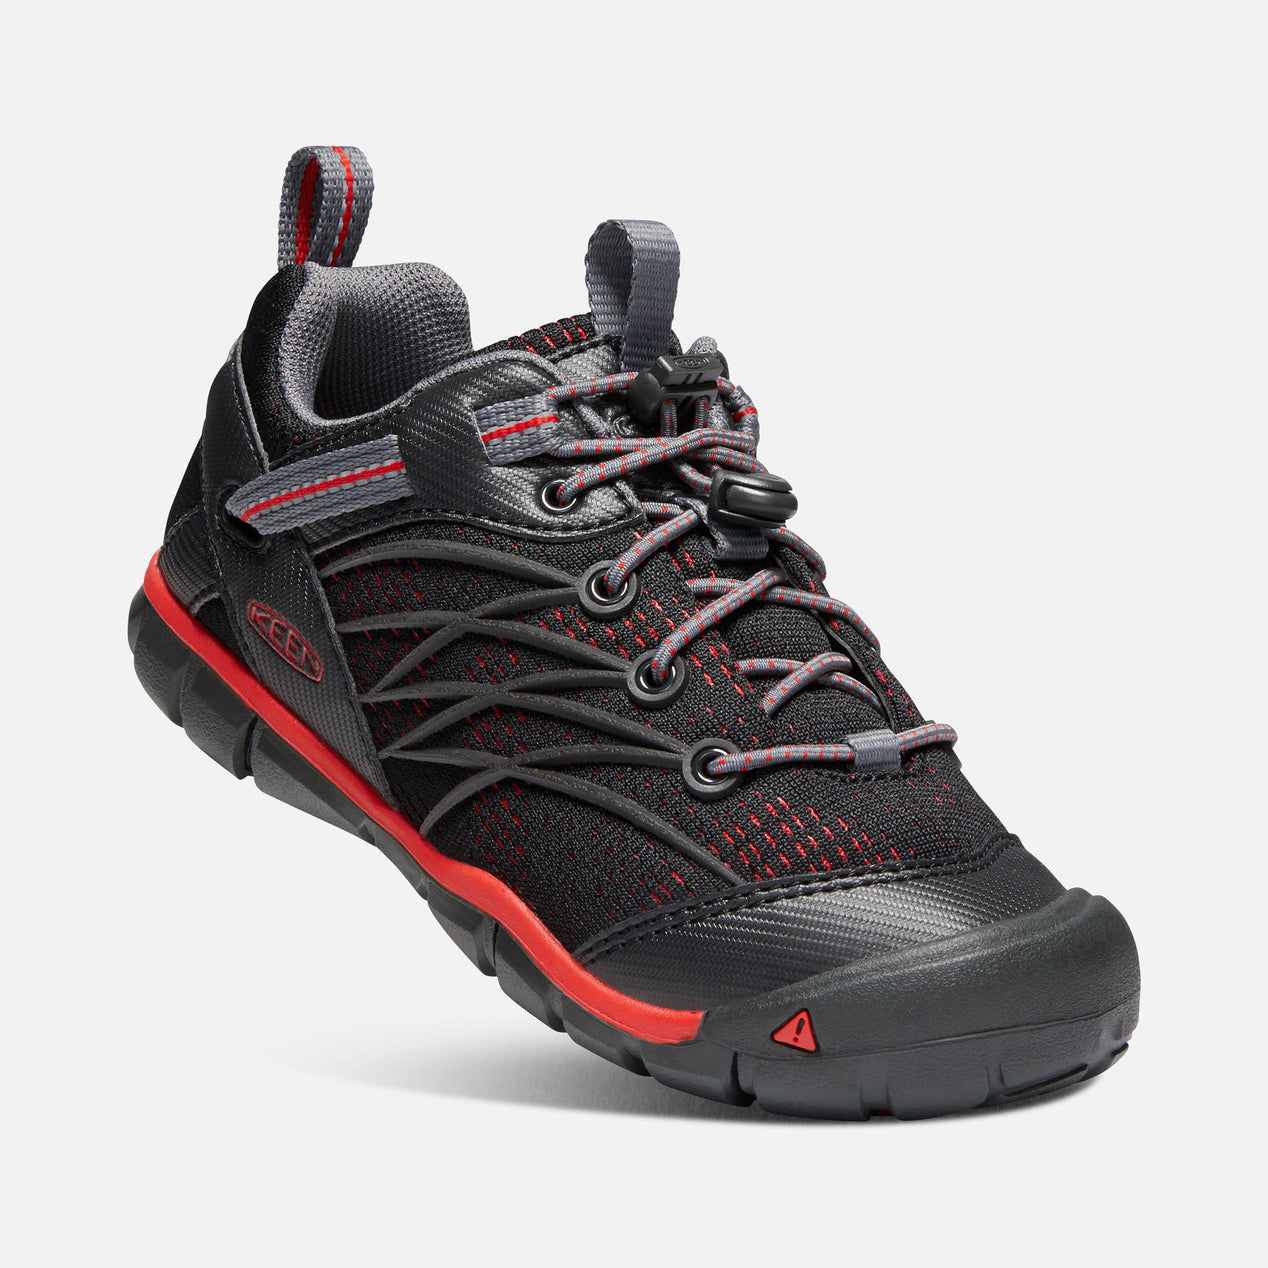 cdae22a3538 Keen Chandler Cnx Shoes - Big Kids | Altitude Sports